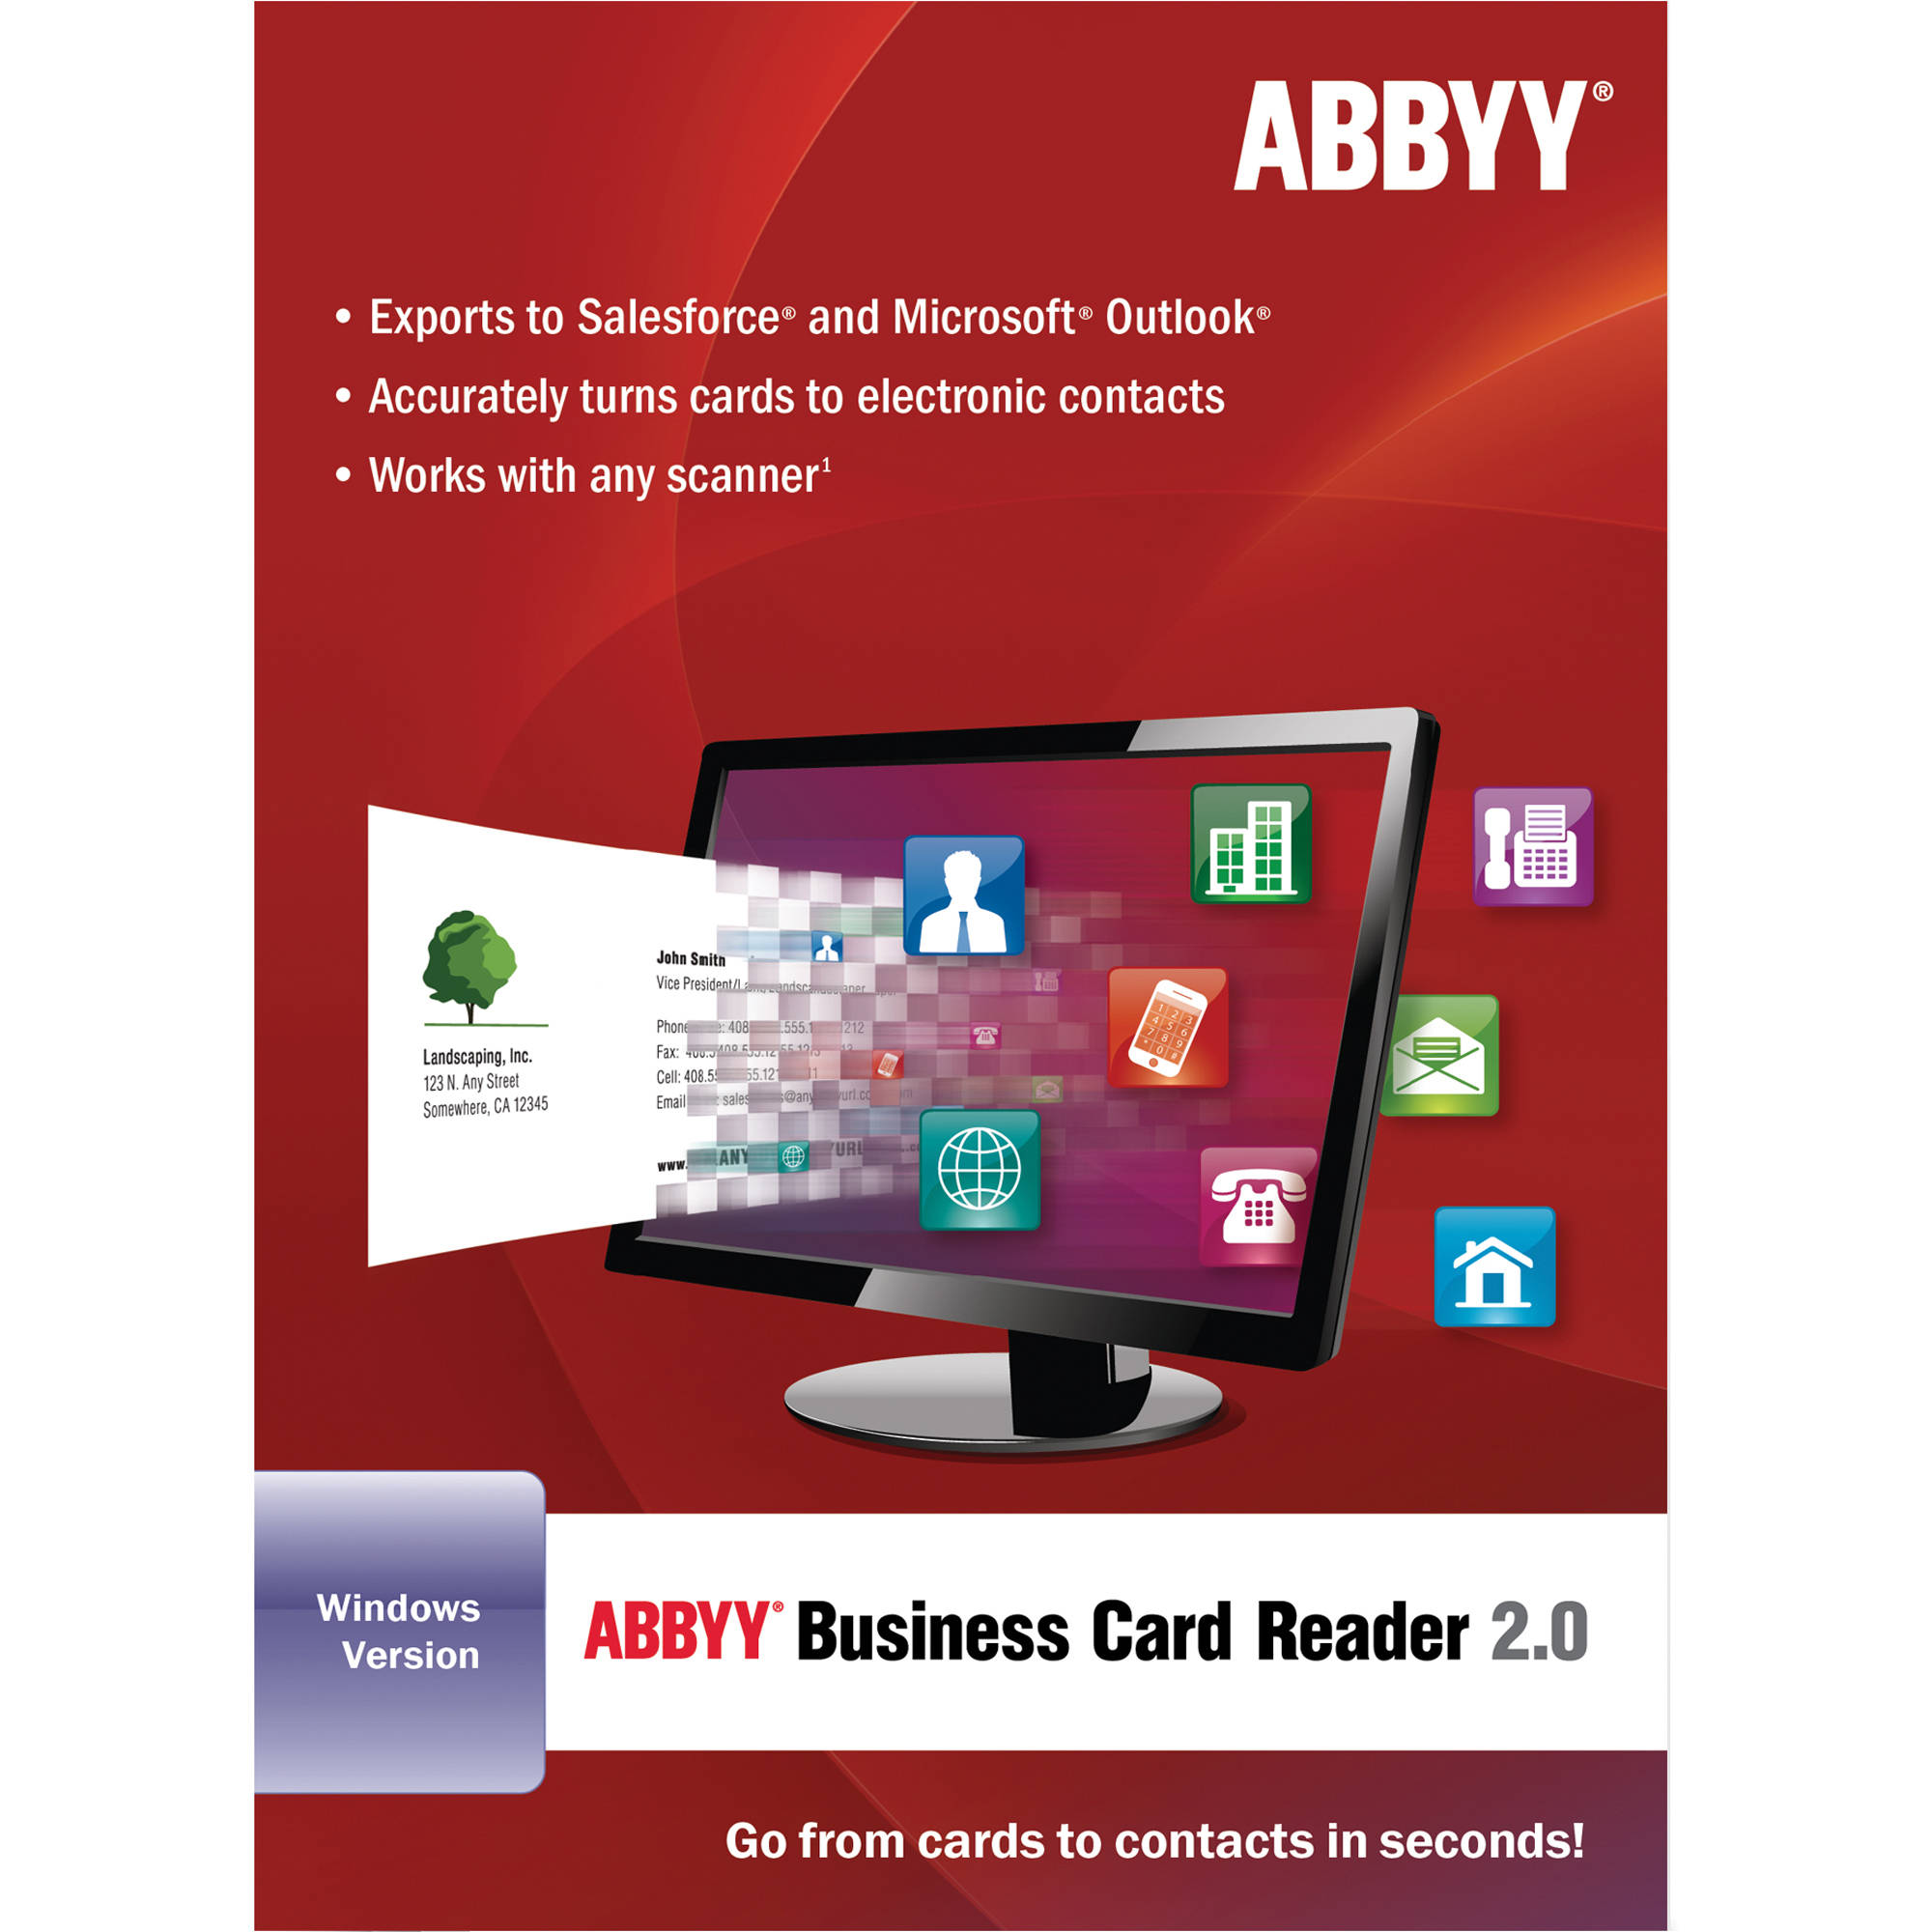 Abbyy abbyy business card reader 20 for windows frlbcrdfw2xb abbyy abbyy business card reader 20 for windows reheart